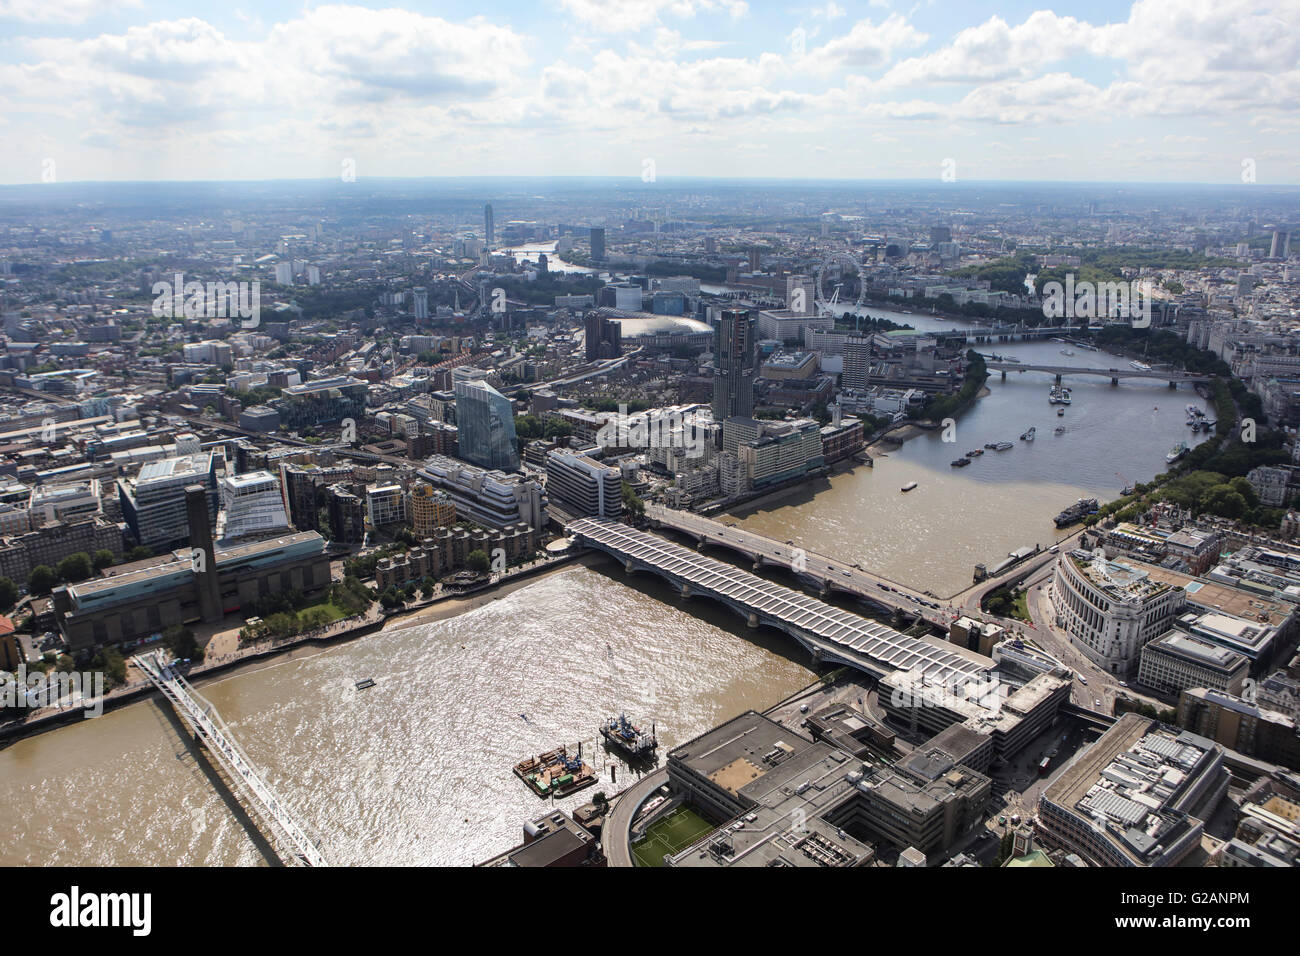 An aerial view of London looking from Blackfriars Bridge towards Westminster - Stock Image